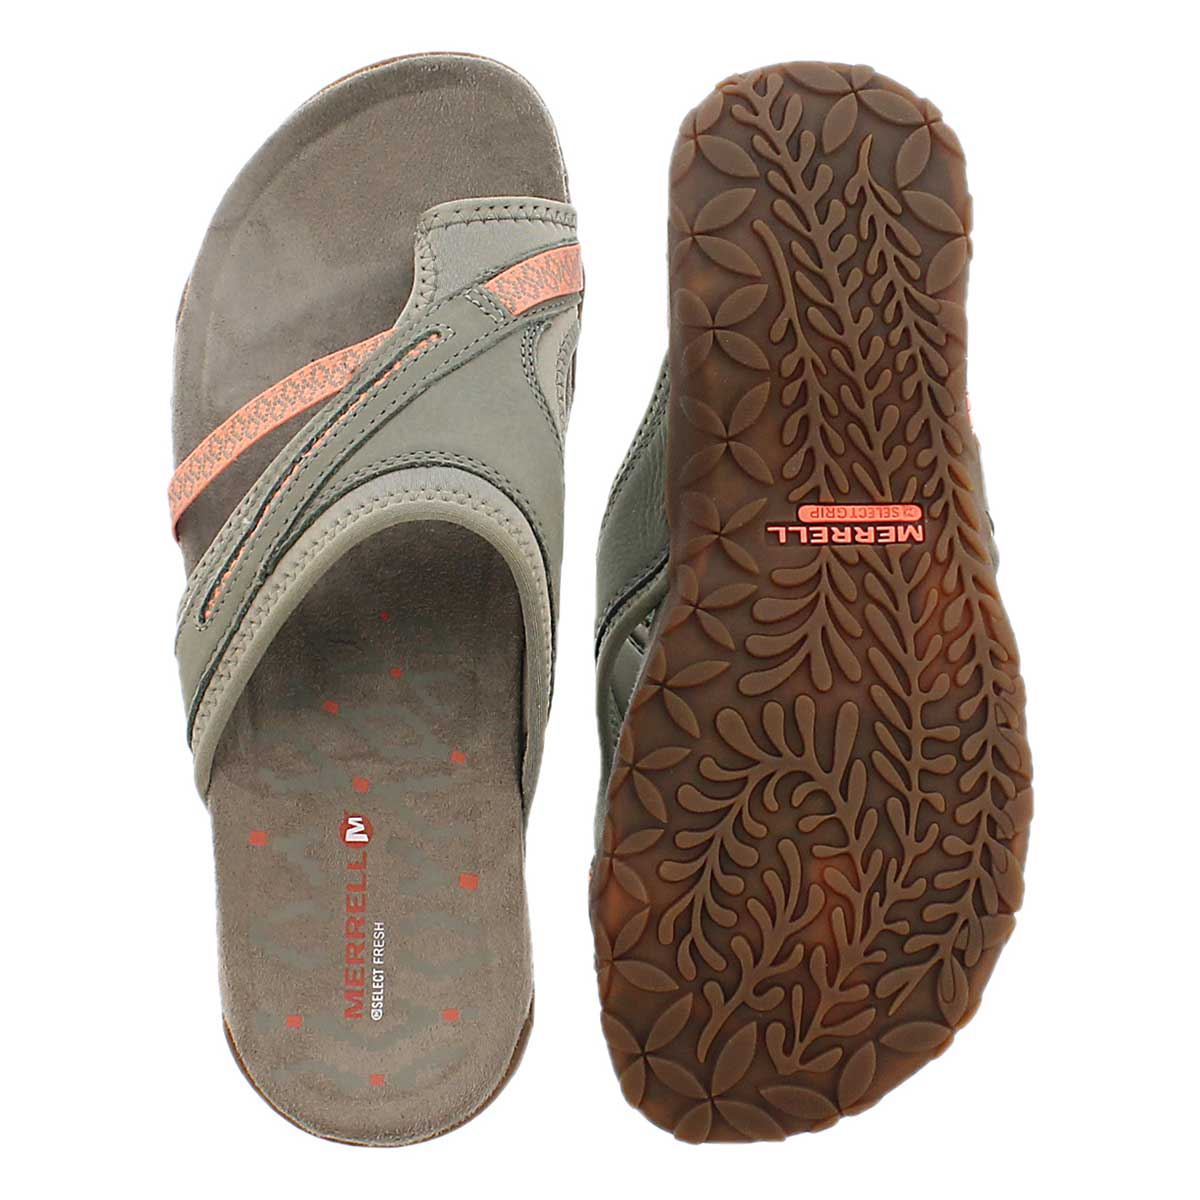 Lds Terran Post II putty toe wrap sandal